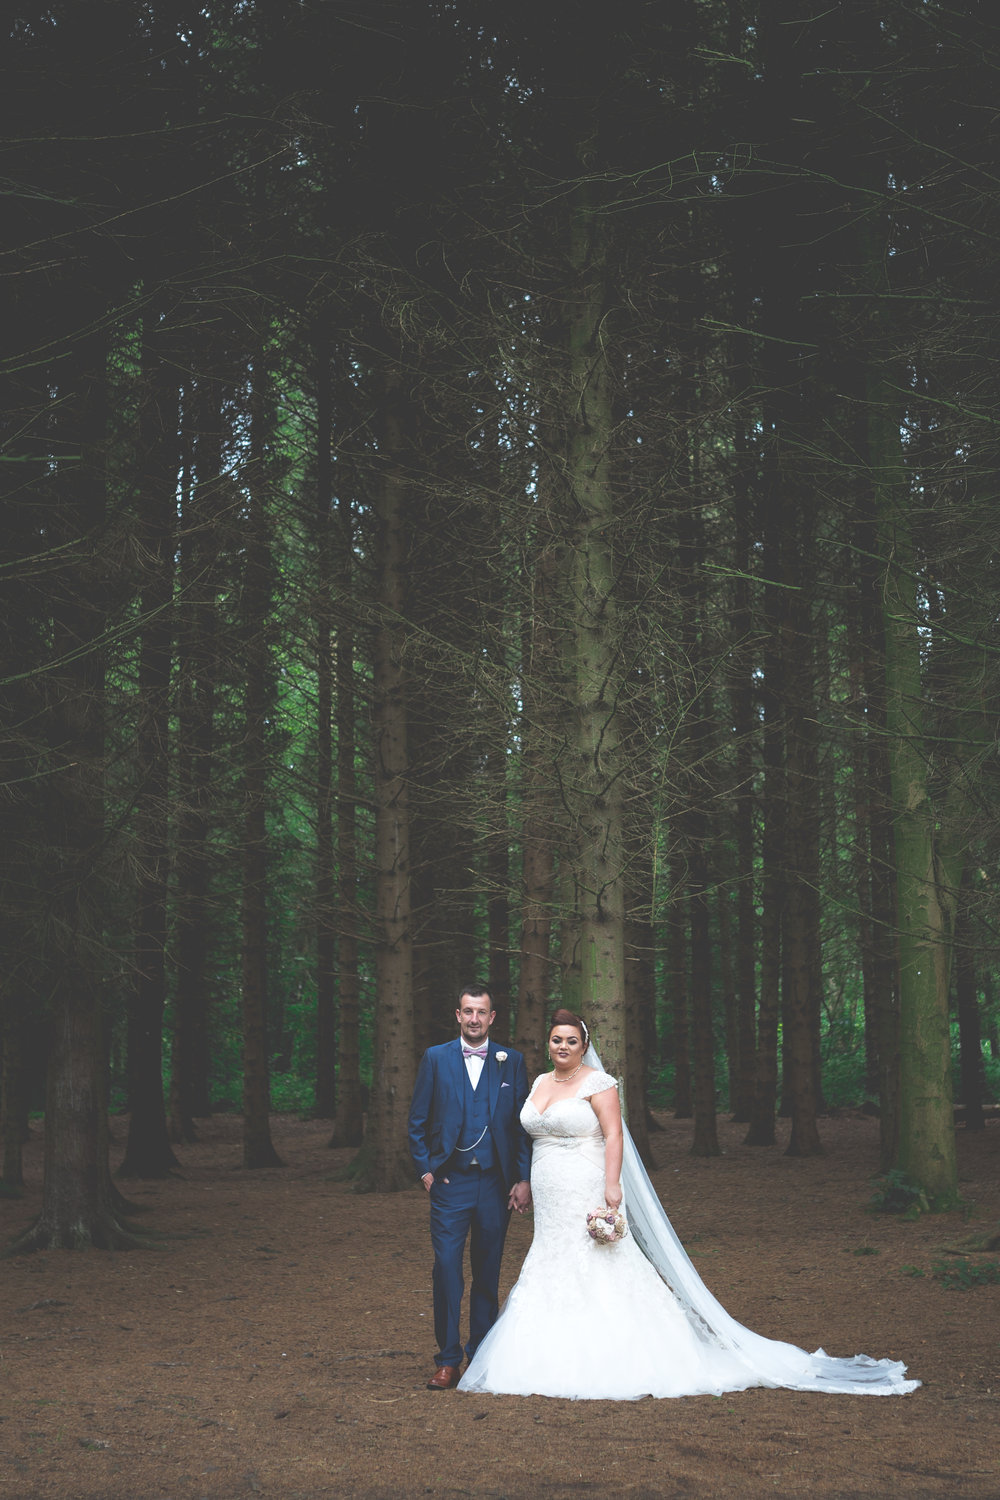 Antoinette & Stephen - Portraits | Brian McEwan Photography | Wedding Photographer Northern Ireland 18.jpg